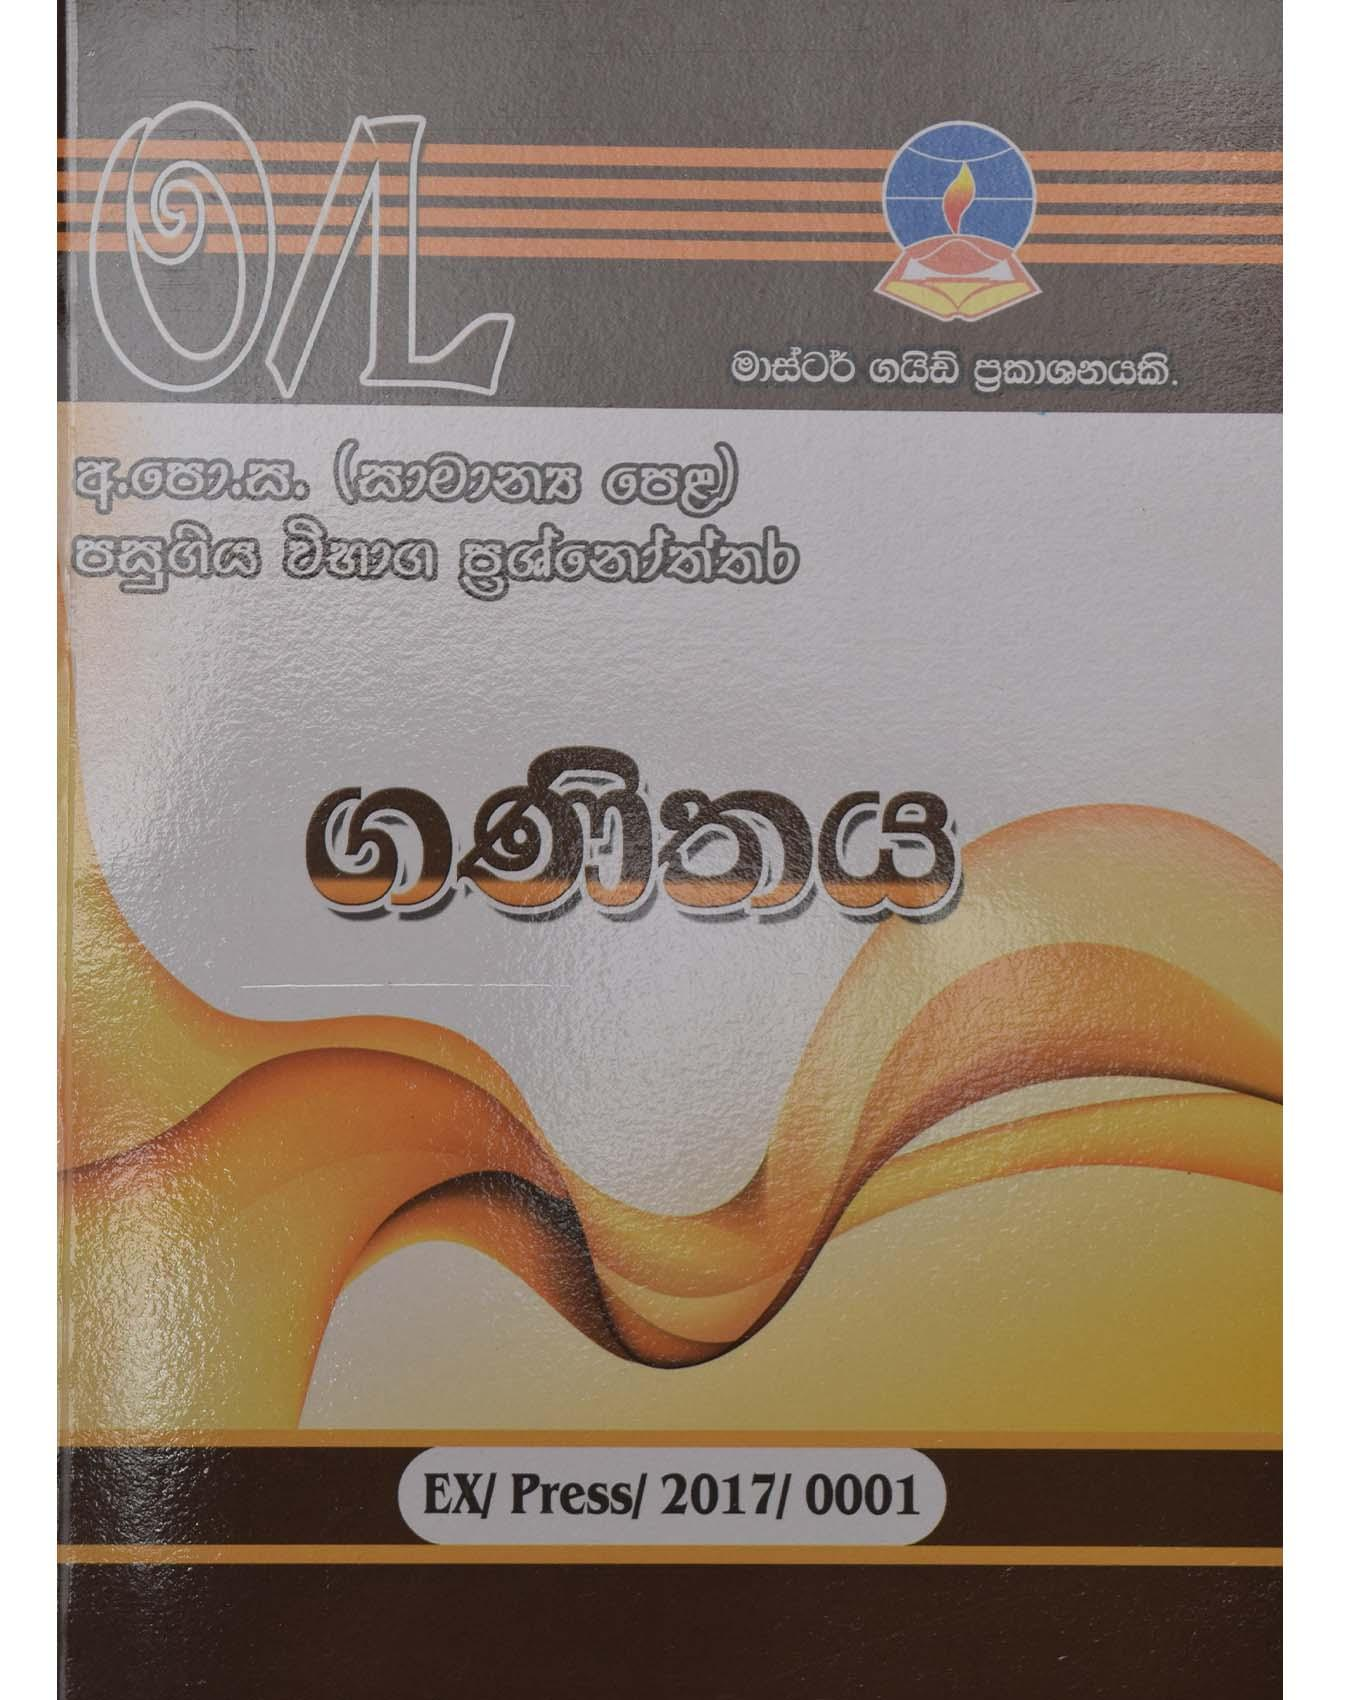 O/L Mathematics Past Papers Book With Answers